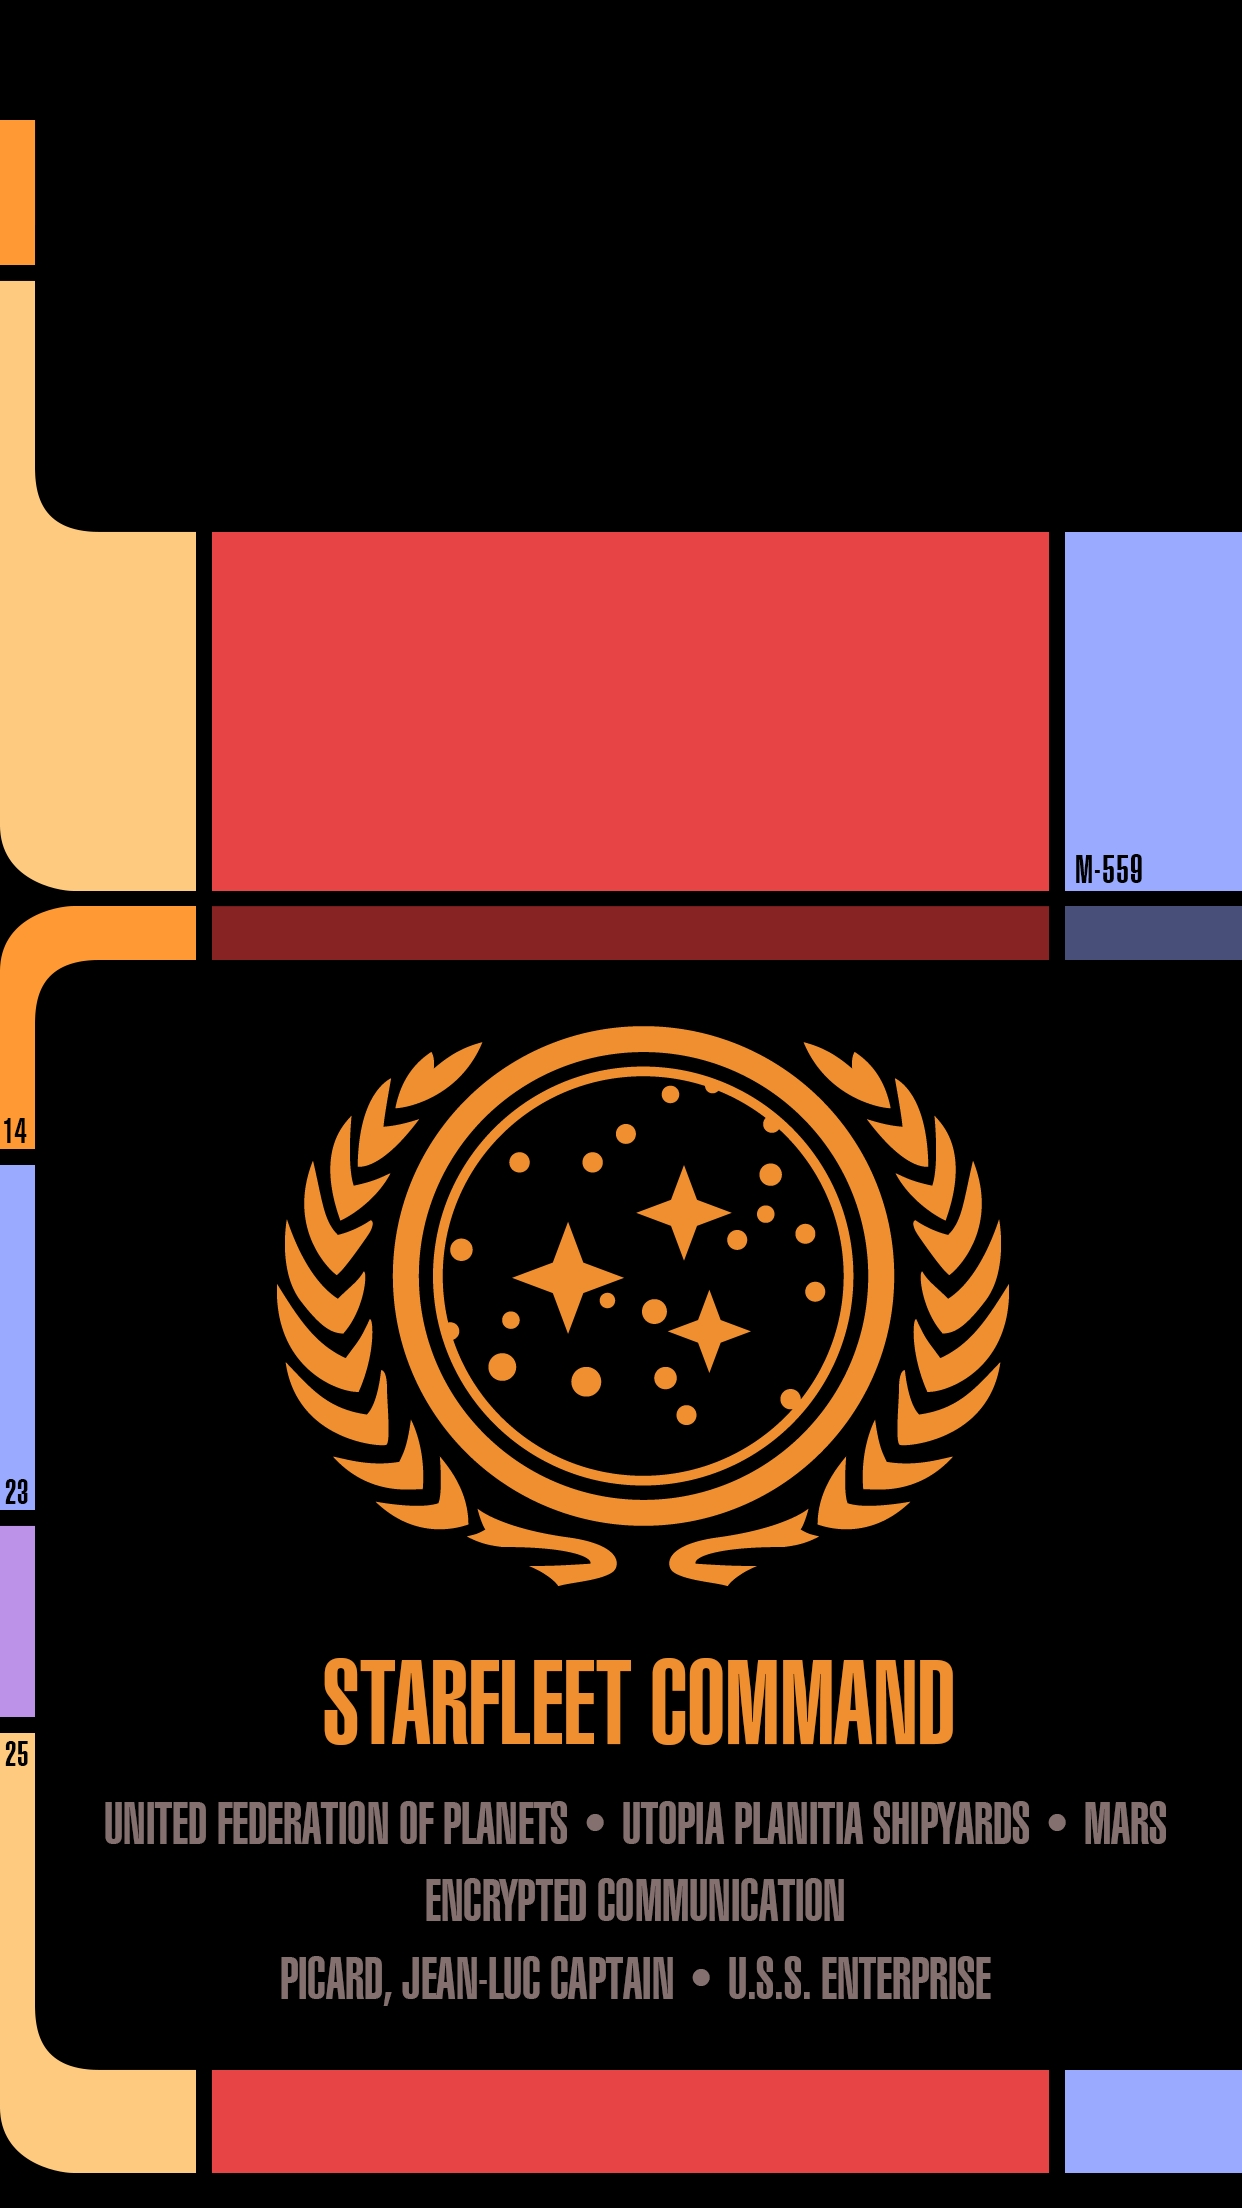 i made a star trek lcars wallpaper for android phones - imgur